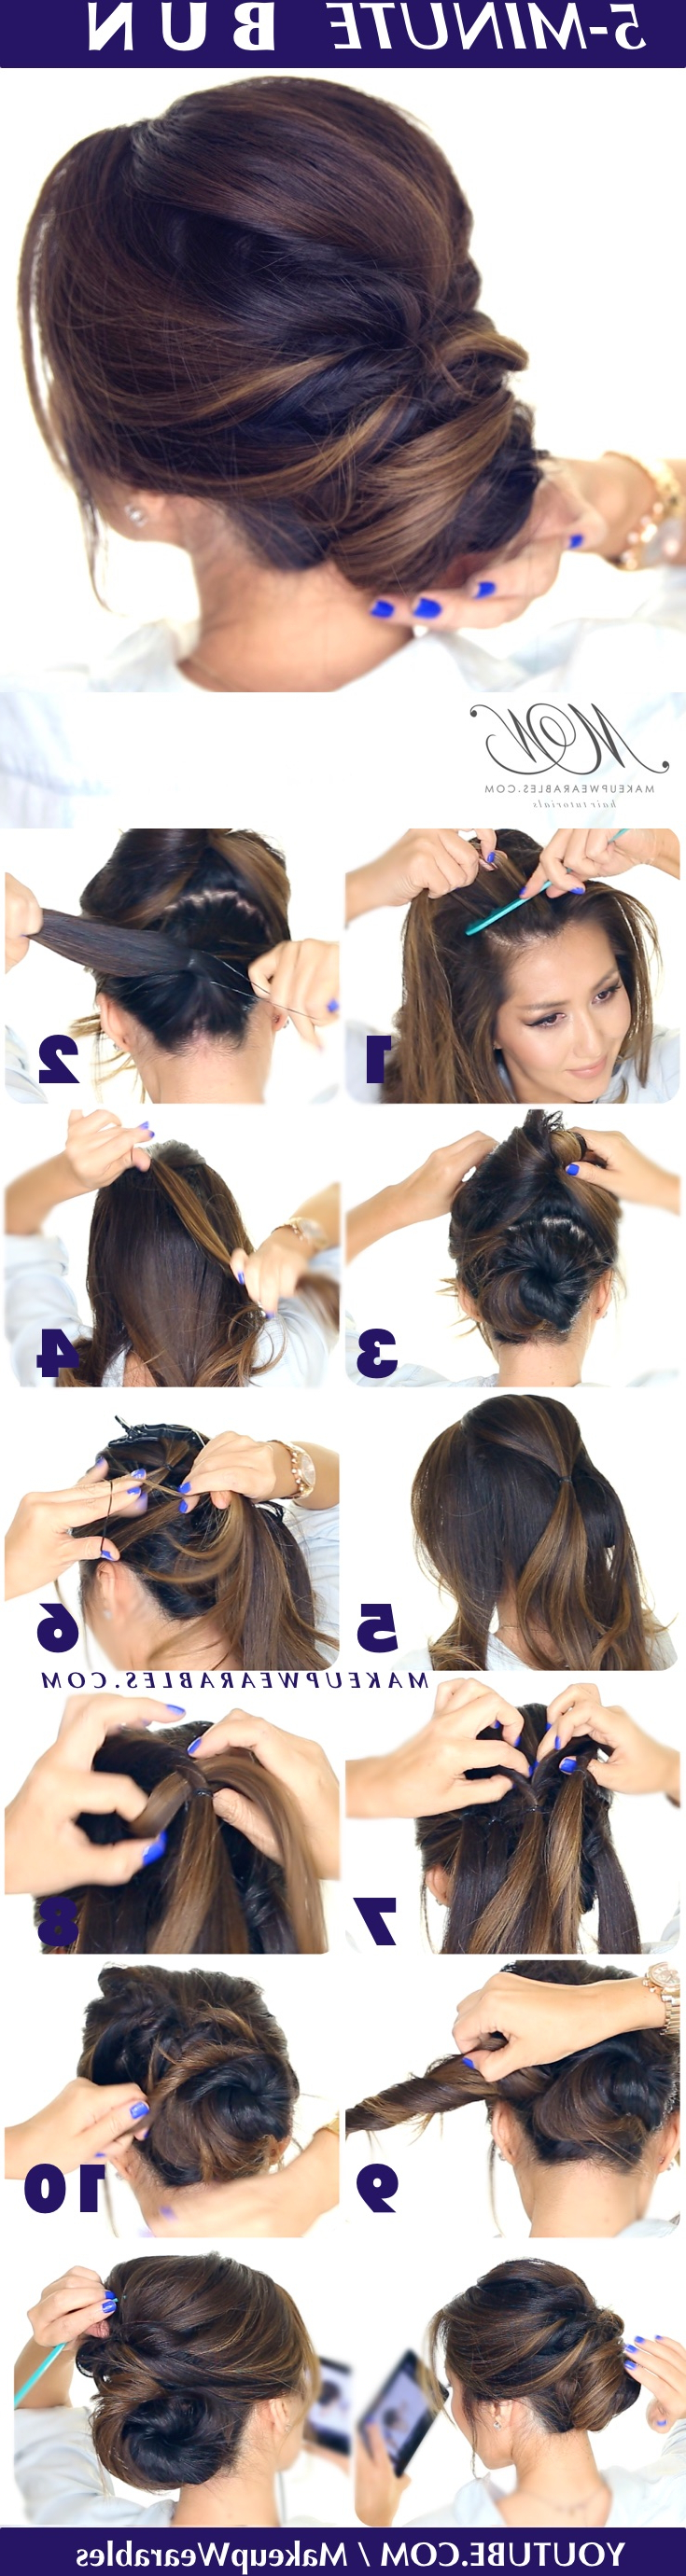 Widely Used Elegant Twist Updo Prom Hairstyles Throughout 5 Minute Romantic Updo Tutorial (View 20 of 20)